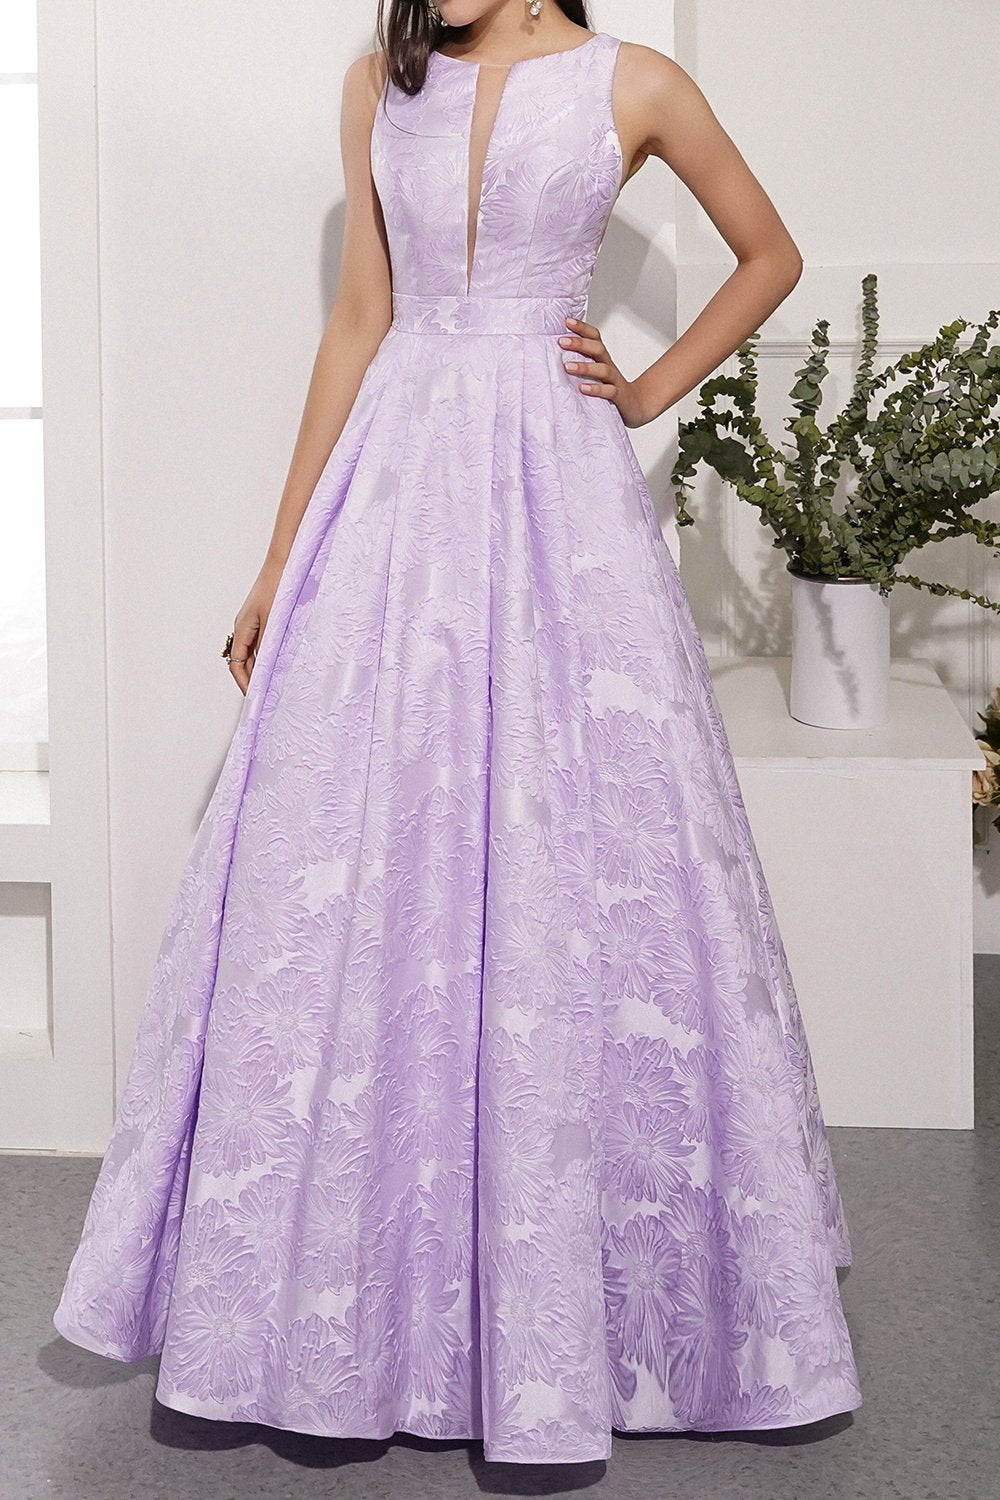 Lavender Satin Prom Dress